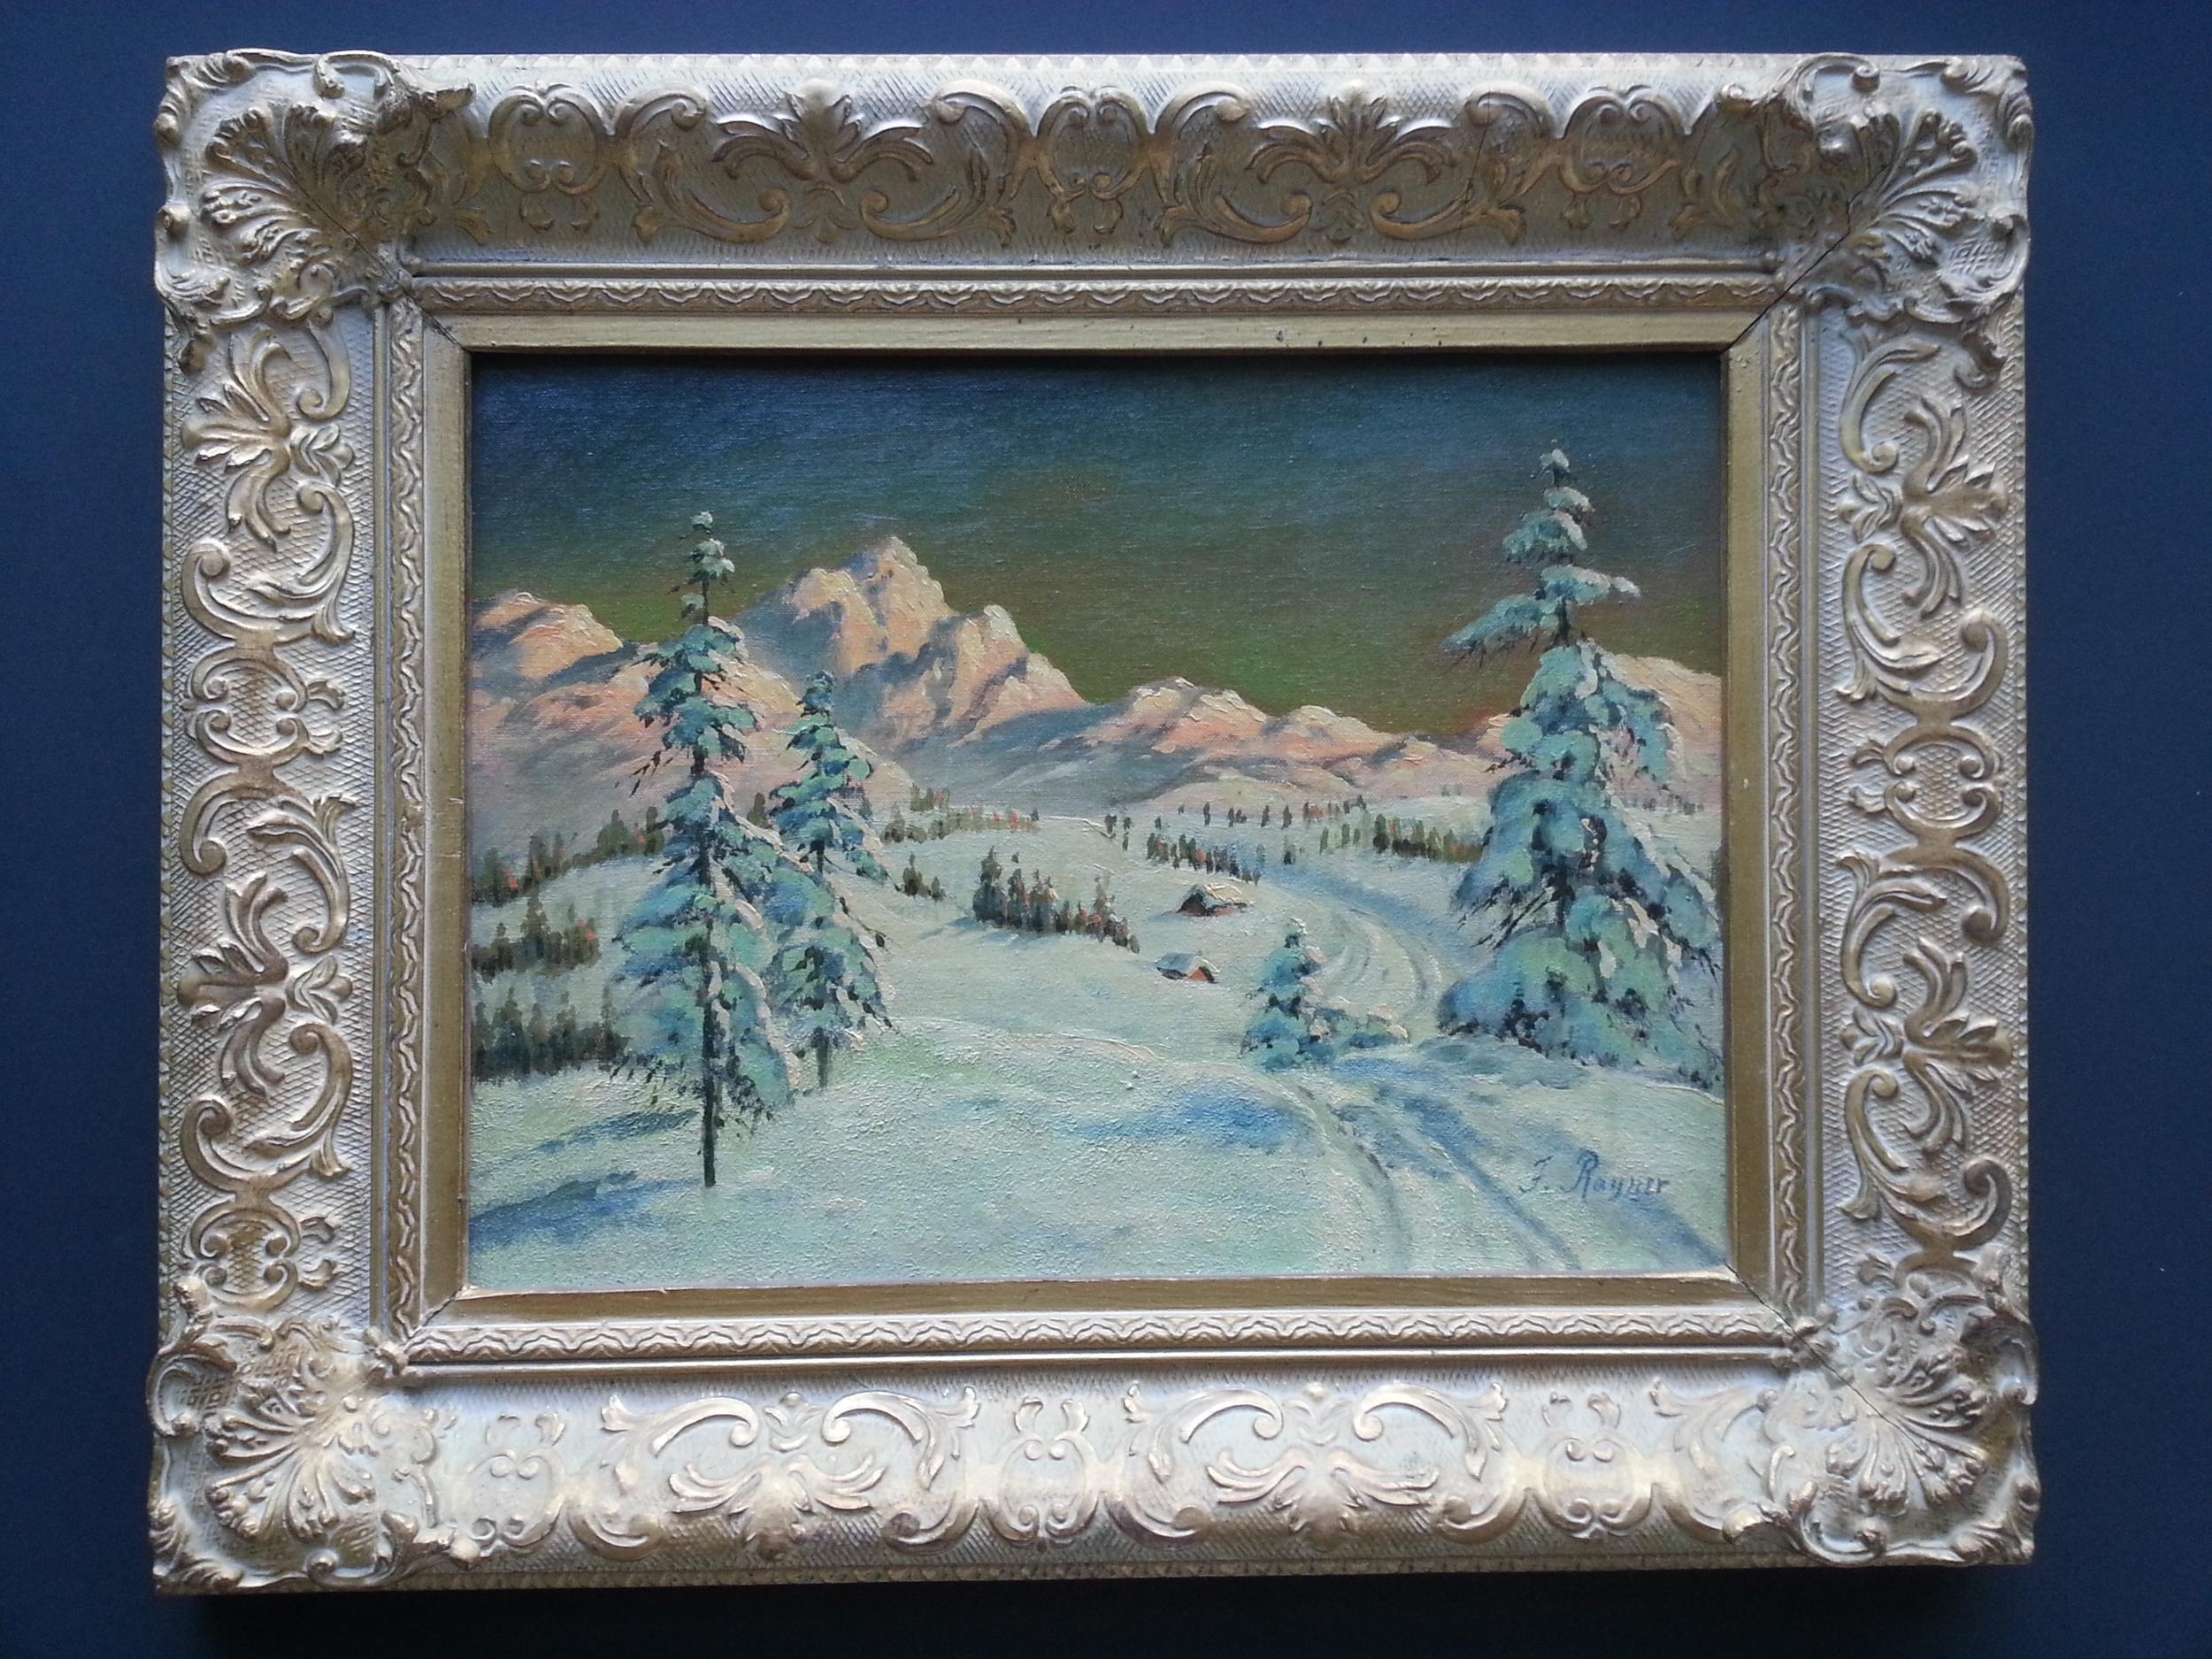 "Winter Hills    Oil on Canvas Board, Signed ( l.r. ) ""F. Rayner""  12"" x 16"" / 18"" x 22"" Framed ( Original Period Frame )    Price Available Upon Request"